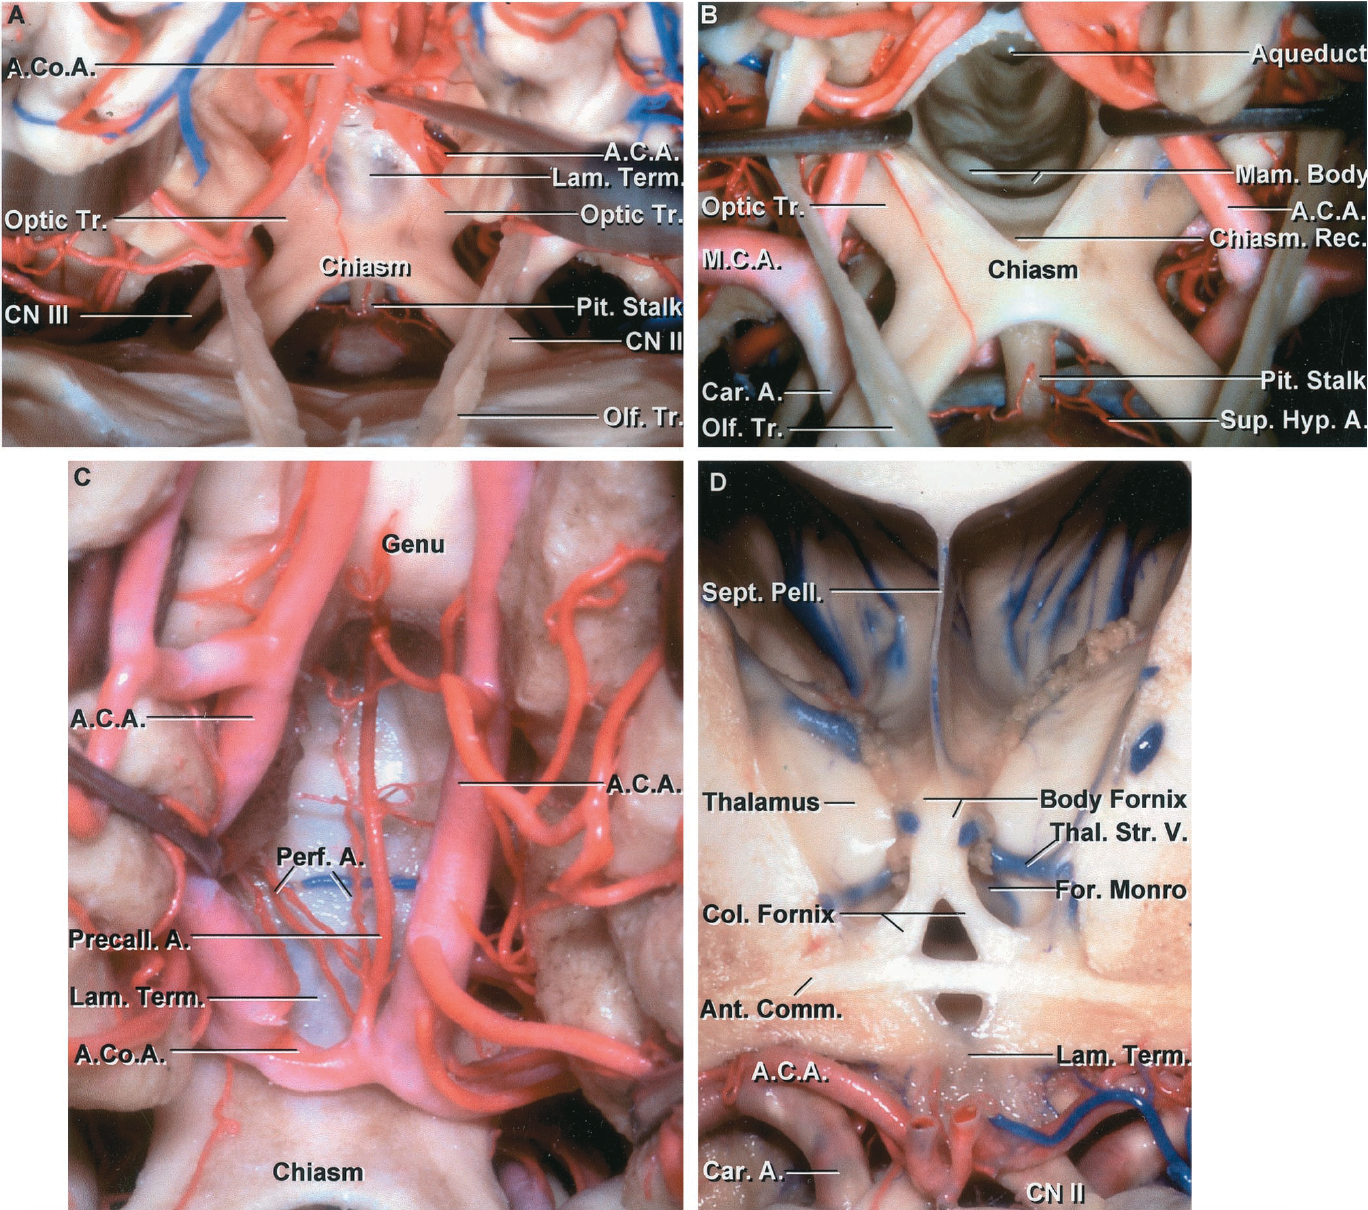 FIGURE 5.15. A-D. Anterior wall of the third ventricle. A, the frontal lobe and the anterior carotid arteries have been elevated to expose the optic chiasm and lamina terminalis. The pituitary stalk extends downward from the floor of the third ventricle. The optic tracts pass along the lateral margin of the floor of the third ventricle. The lamina terminalis blends above into the rostrum of the corpus callosum. The olfactory tracts pass backward above the optic nerves. B, the lamina terminalis has been opened to expose the chiasmatic recess, mamillary bodies, and aqueduct. The pituitary stalk is exposed below the infundibular recess located behind the optic chiasm and in front of the mamillary bodies. Superior hypophyseal arteries pass medially from the carotid artery. C, another third ventricle. The anterior communicating artery commonly passes in front of the lamina terminalis. Perforating arteries arise from a precallosal branch of the anterior communicating artery and penetrate the anterior wall of the third ventricle to reach the columns of the fornix. D, anterior view of a cross section through the anterior part of the third ventricle and body of the lateral ventricle. The lamina terminalis, which has been opened, extends upward in front of the anterior commissure and blends into the rostrum of the corpus callosum. The anterior cerebral arteries have been folded forward. The choroid plexus extends through the foramen of Monro into the roof of the third ventricle below and the body of the lateral ventricle above.